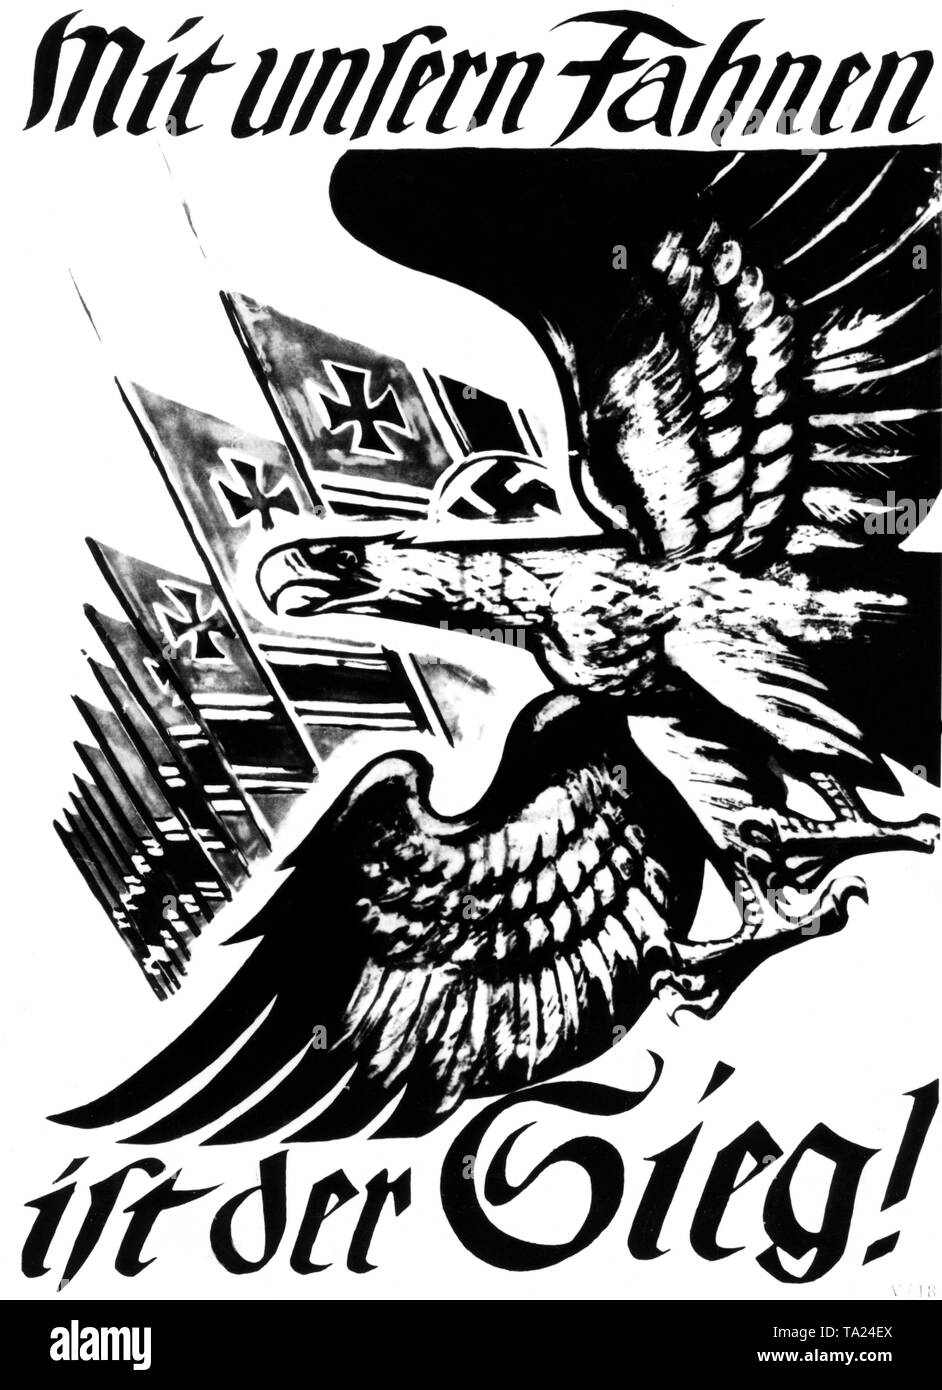 Propaganda poster with the German imperial eagle in a dive. In the background, some flags with the emblem of the Wehrmacht. A lettering proclaims 'Victory is with our flags!' - Stock Image